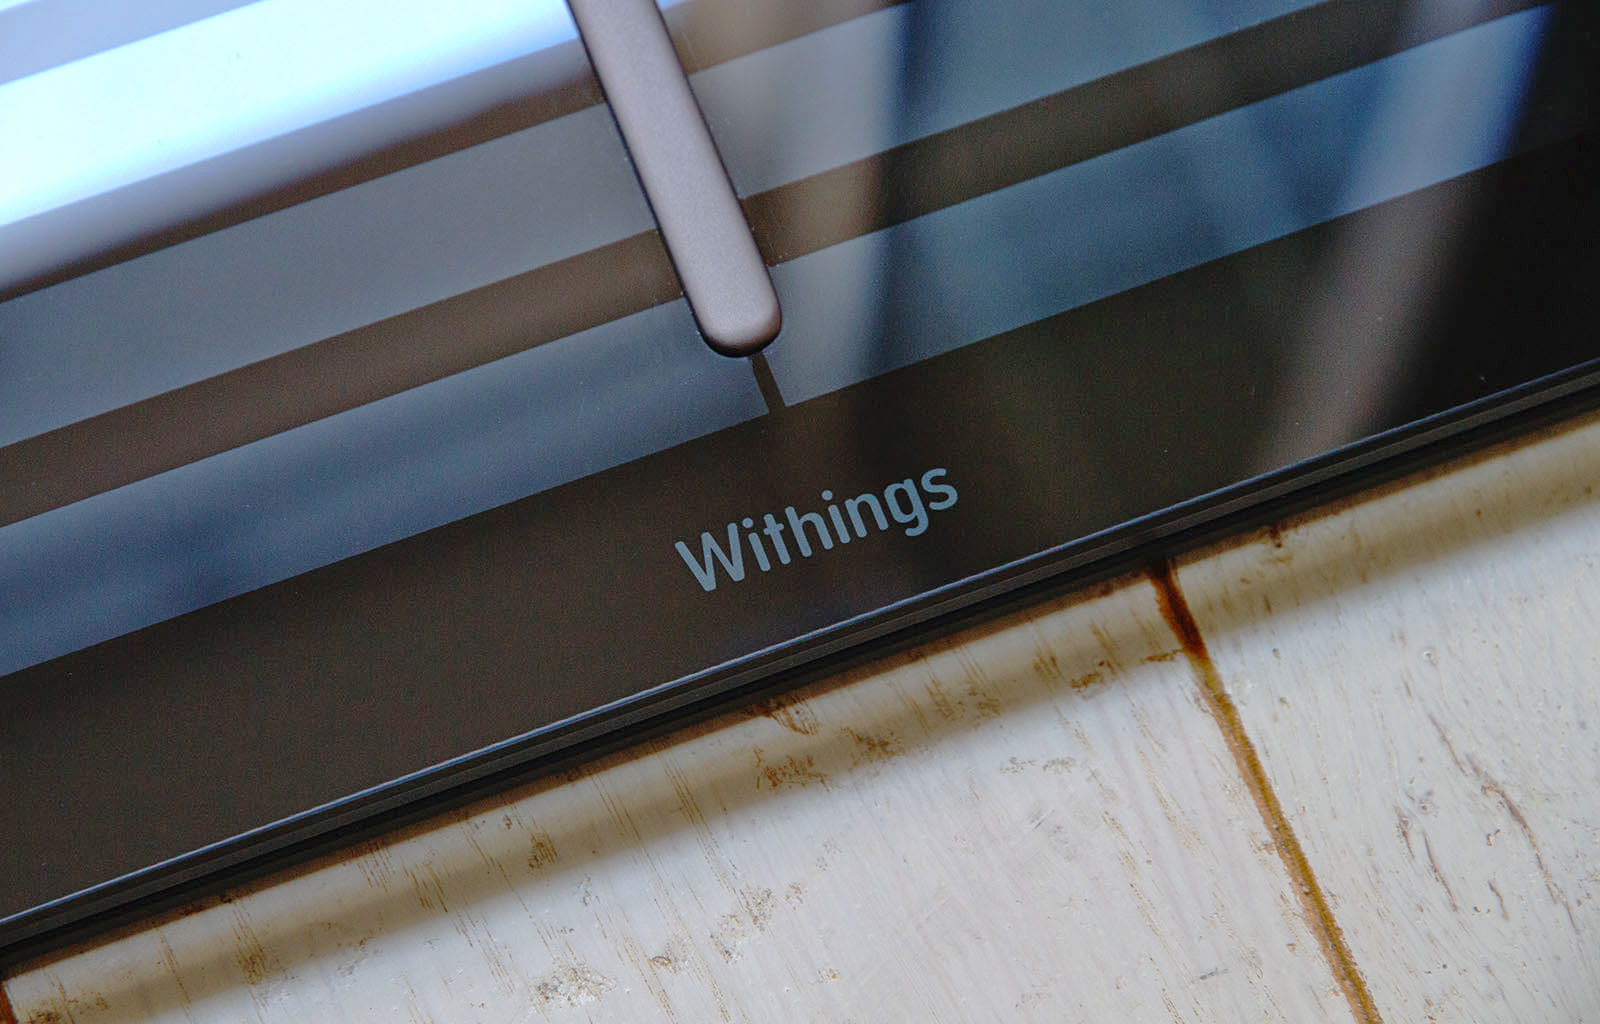 Withings Returns At A Dark Time For Wearables